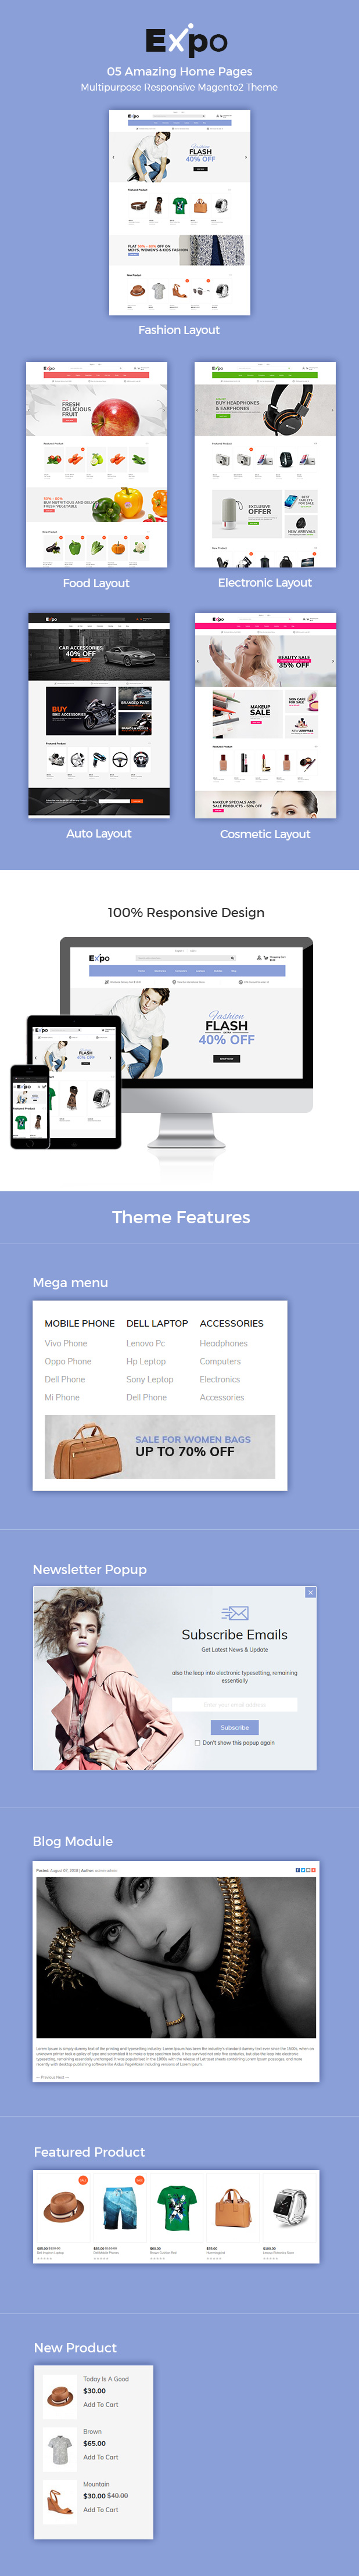 Expo - Multipurpose Responsive Magento2 Theme | Fashion Electronics Auto Cosmetic & Food - 1